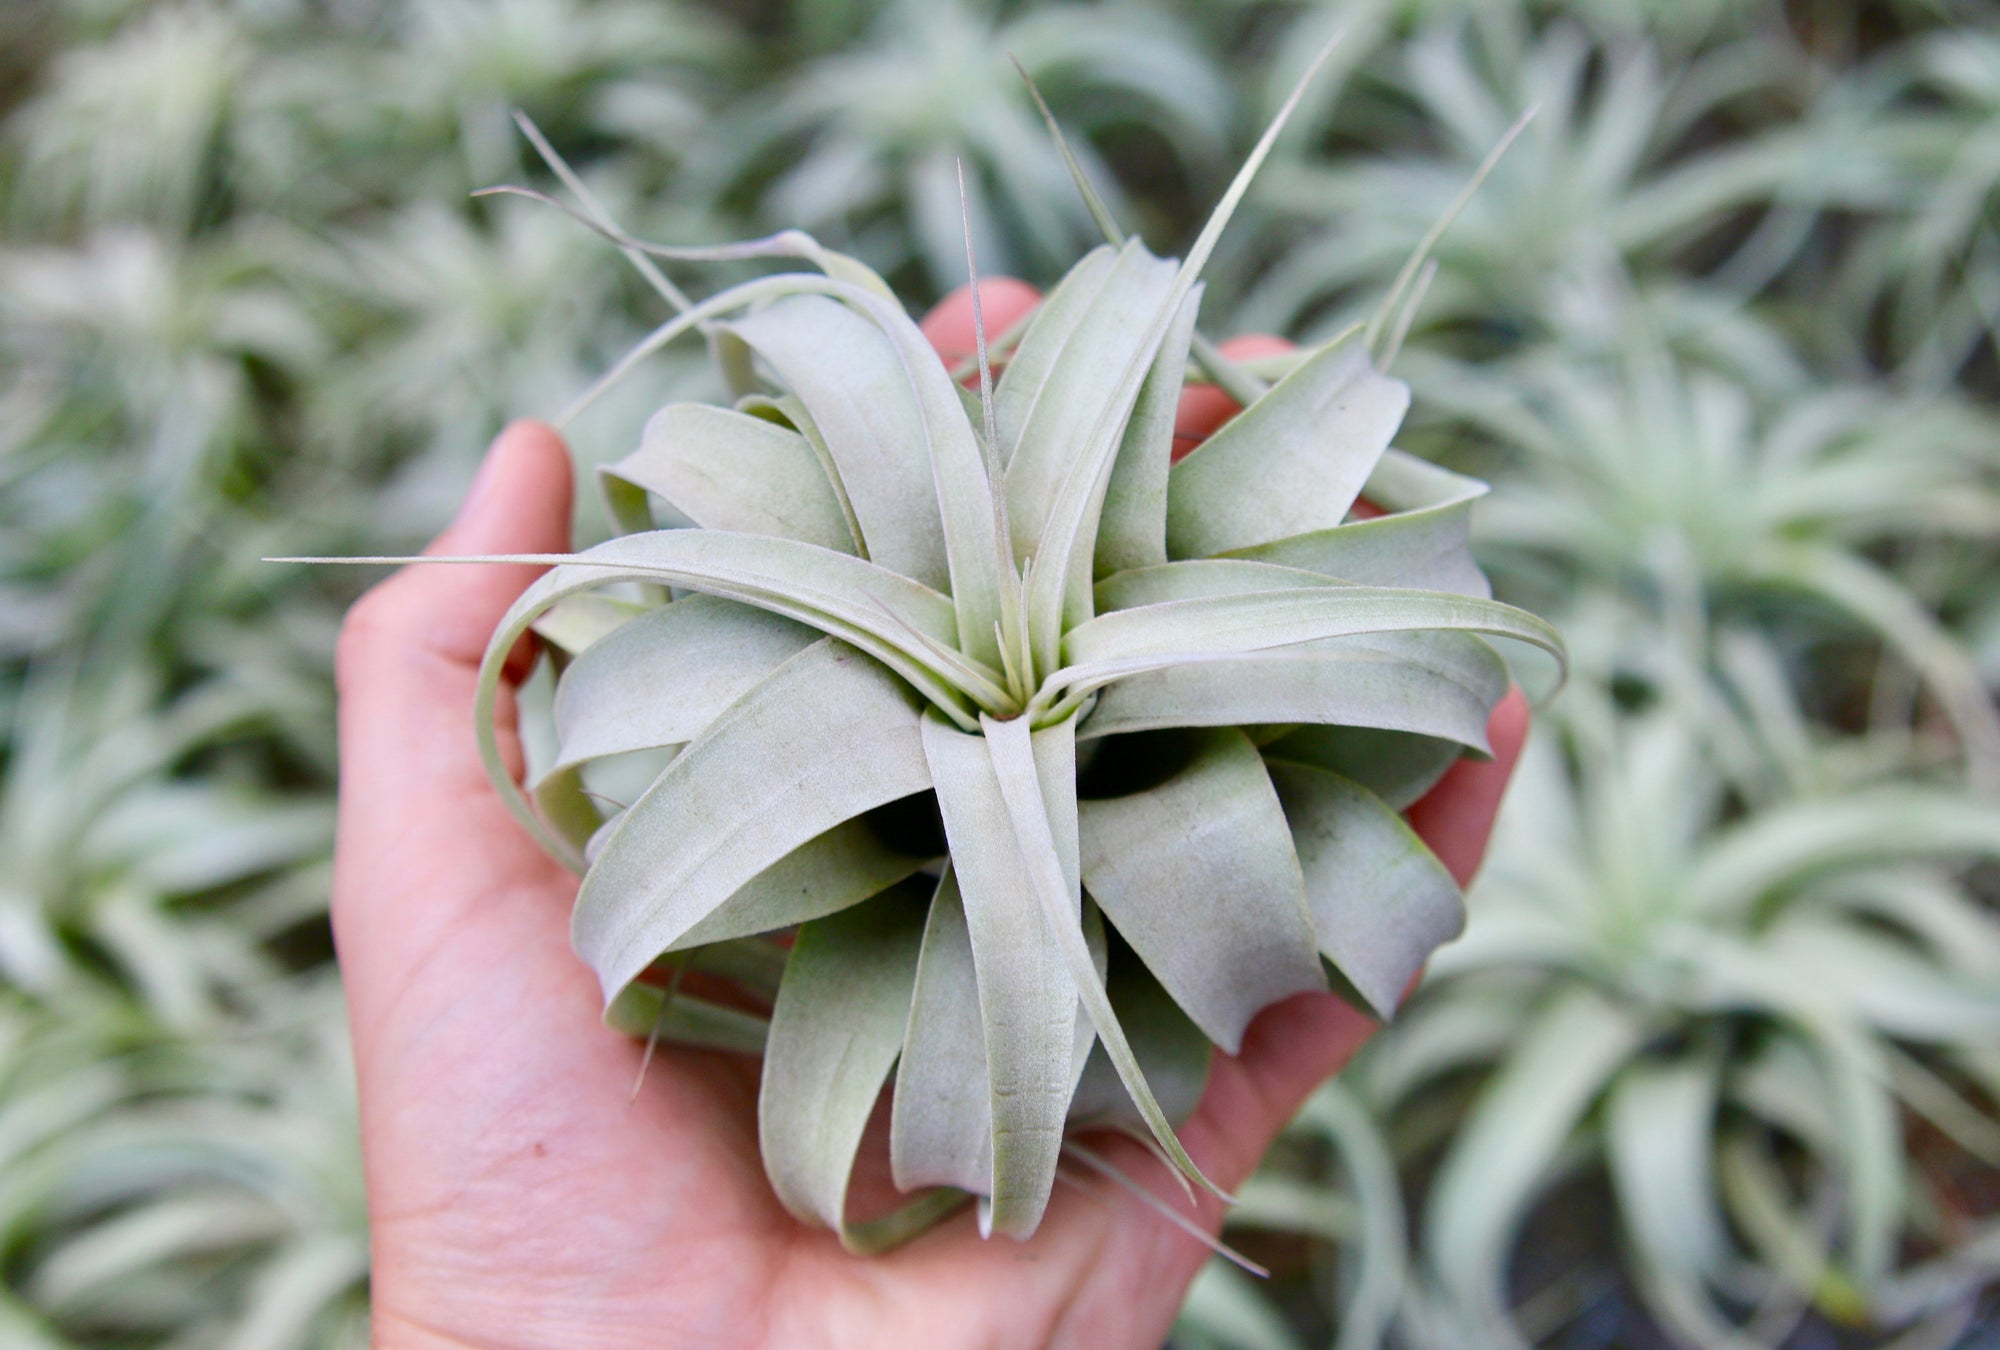 Wholesale: Small Tillandsia Xerographica Air Plants / 4-5 Inches Across [Min Order 12] from AirPlantShop.com